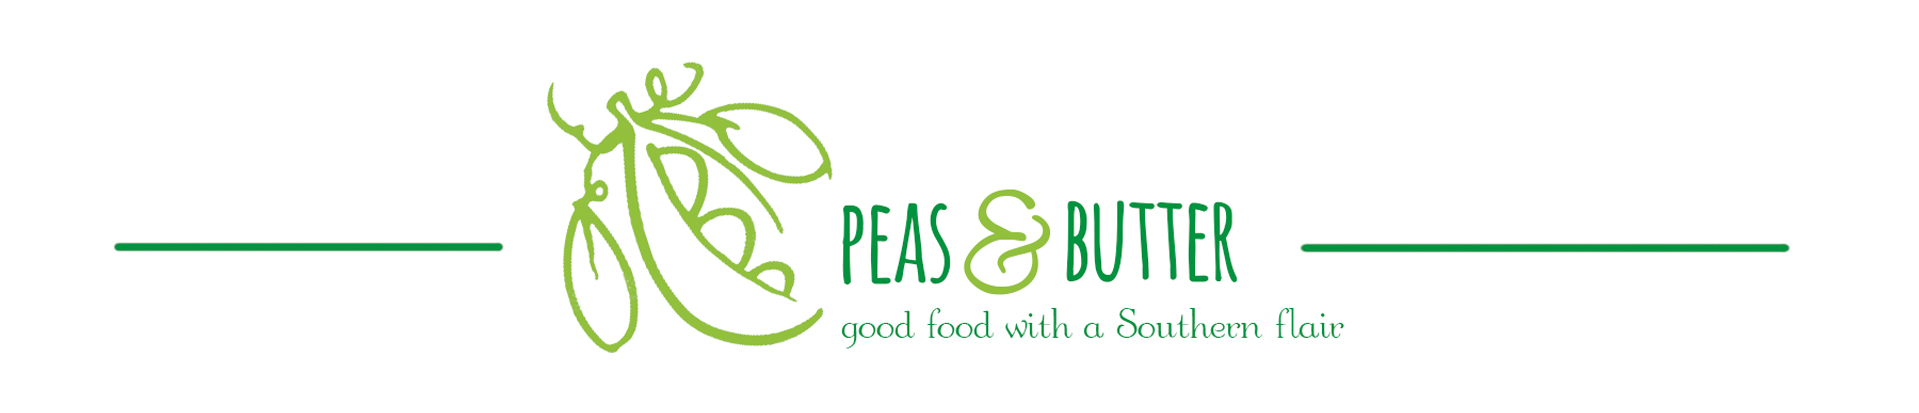 Peas and Butter